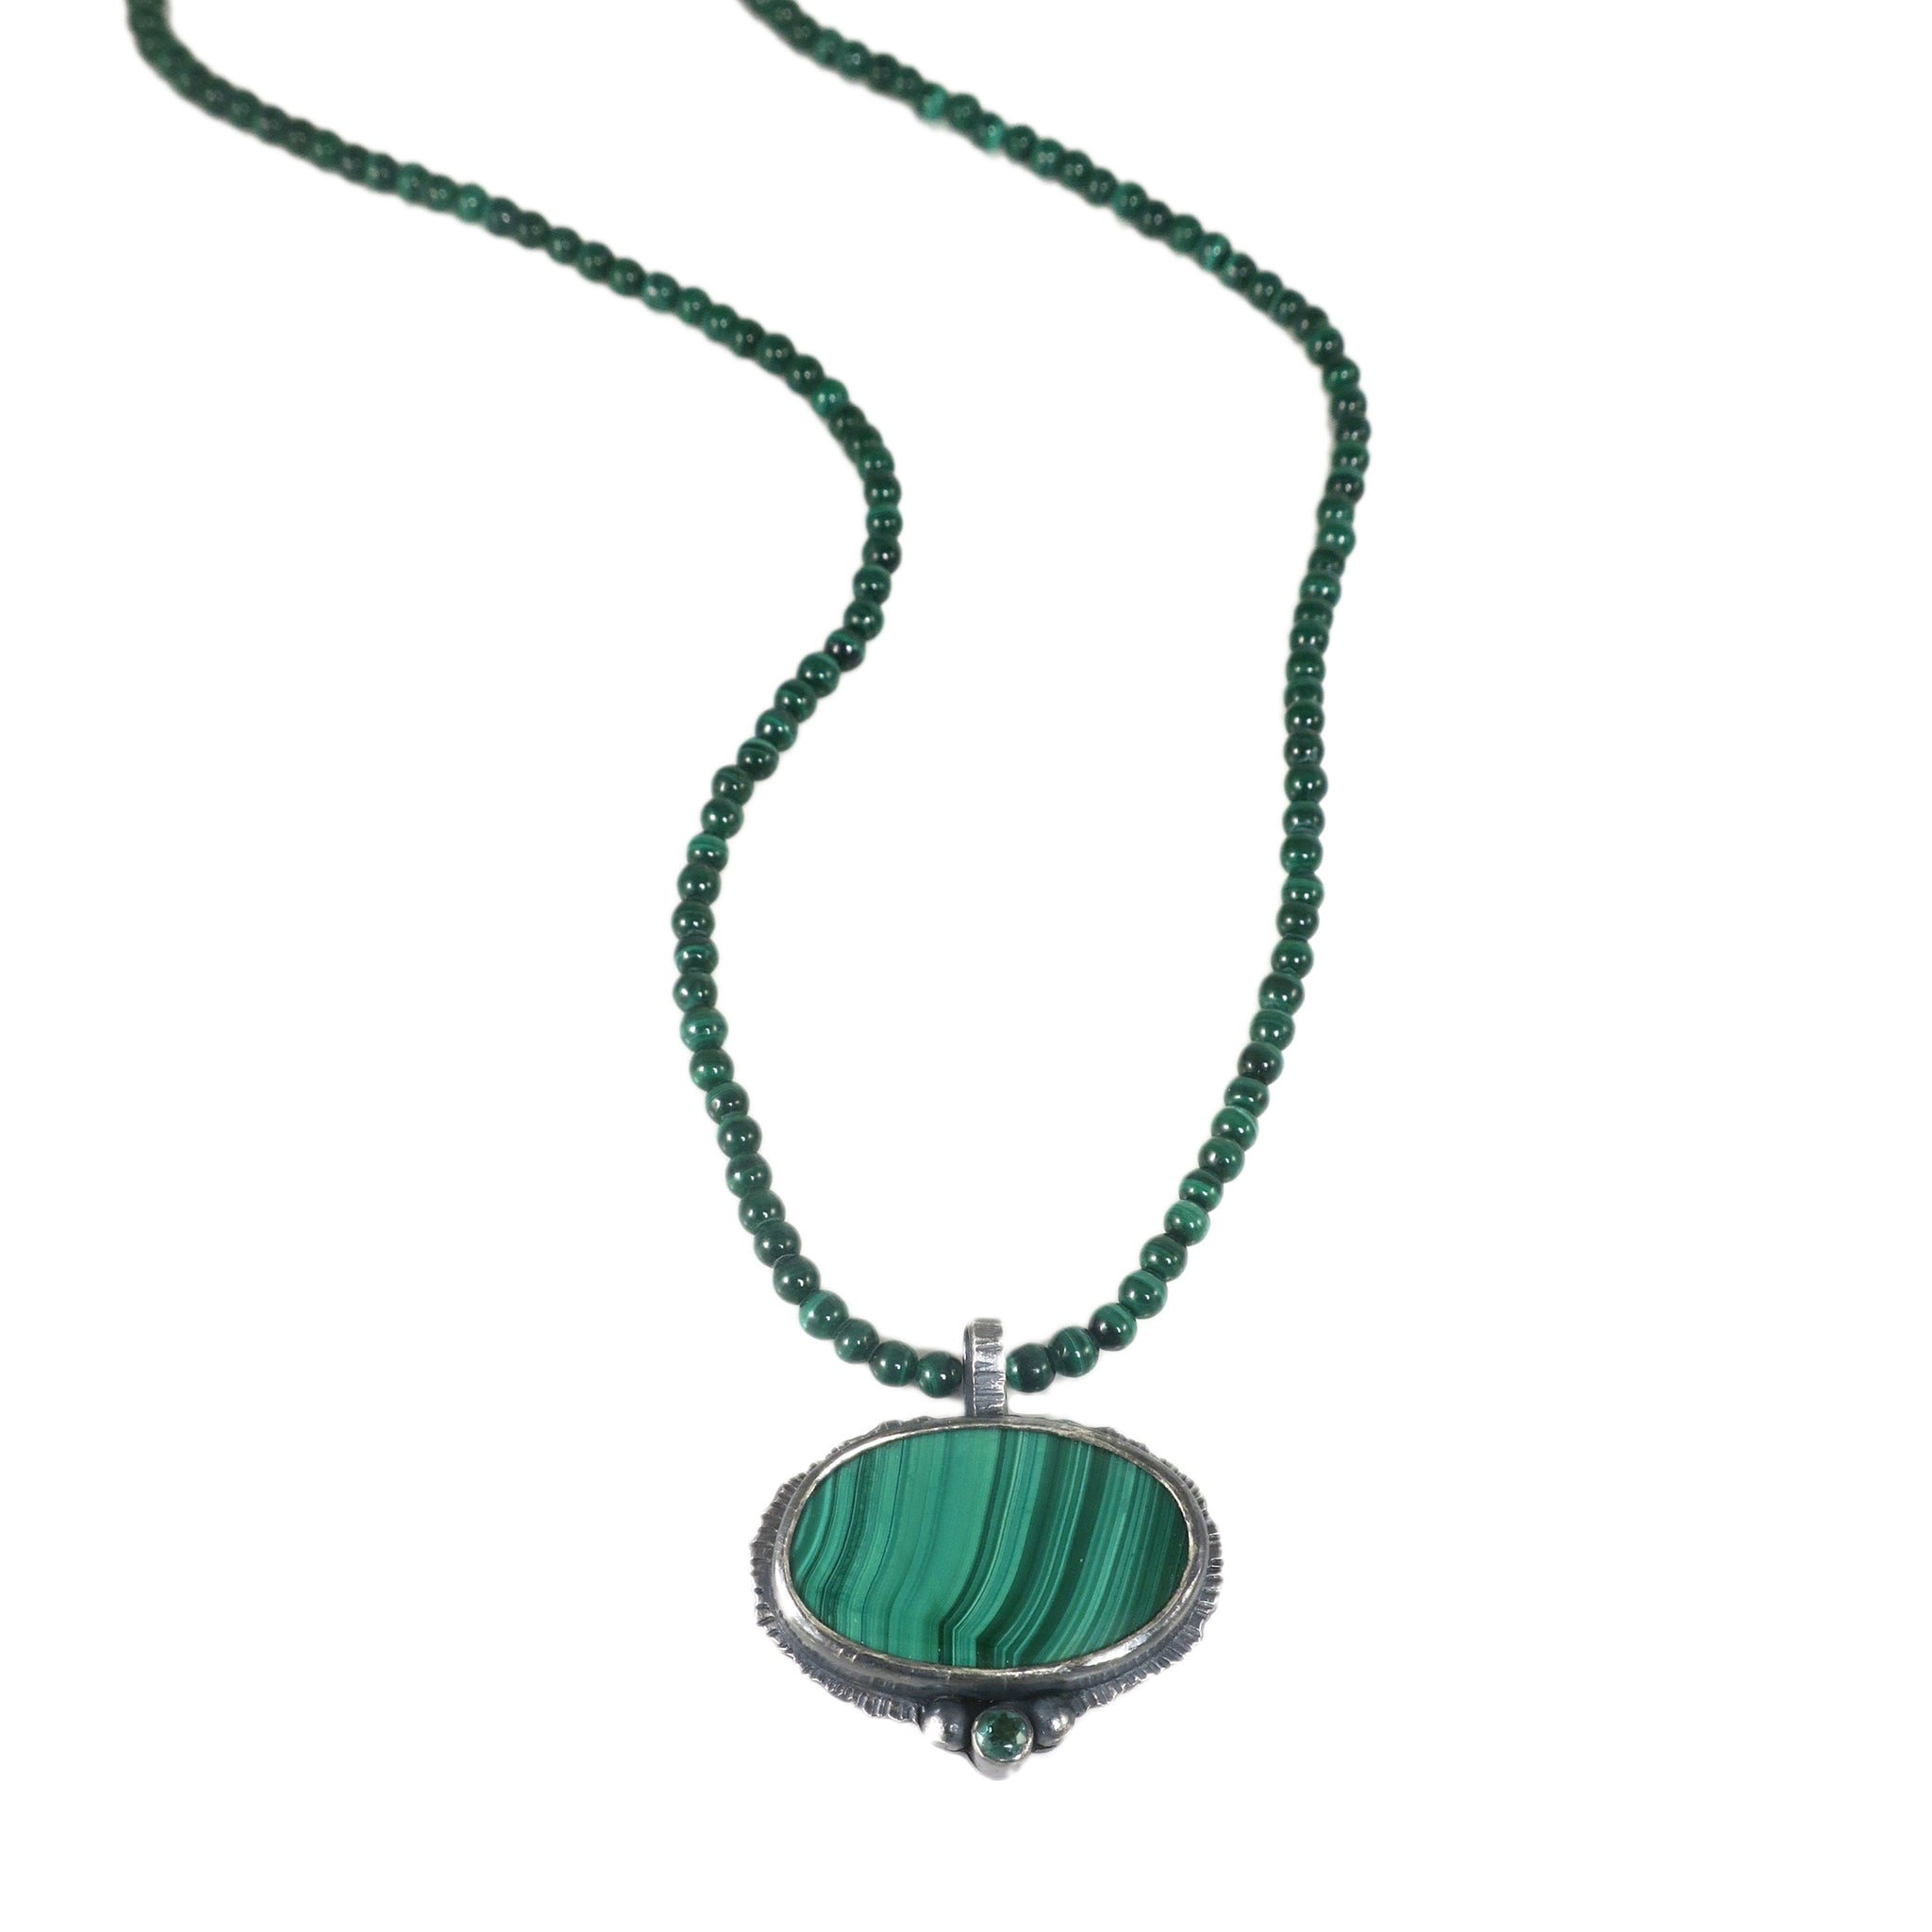 unEarthed necklace with malachite and green tourmaline